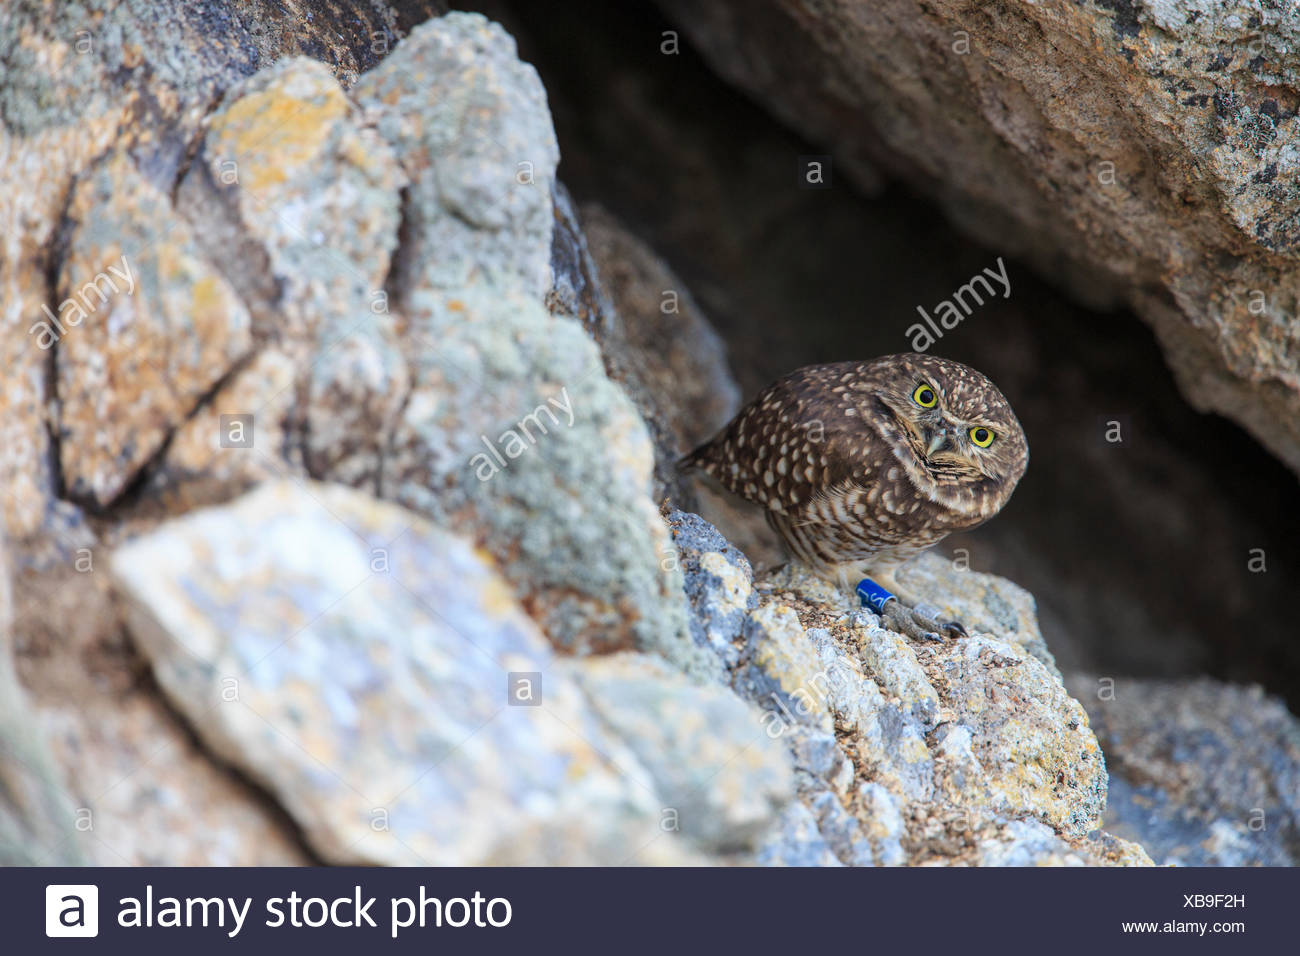 A burrowing owl, wearing a scientists' leg band, searches the surrounding rocks for prey. - Stock Image